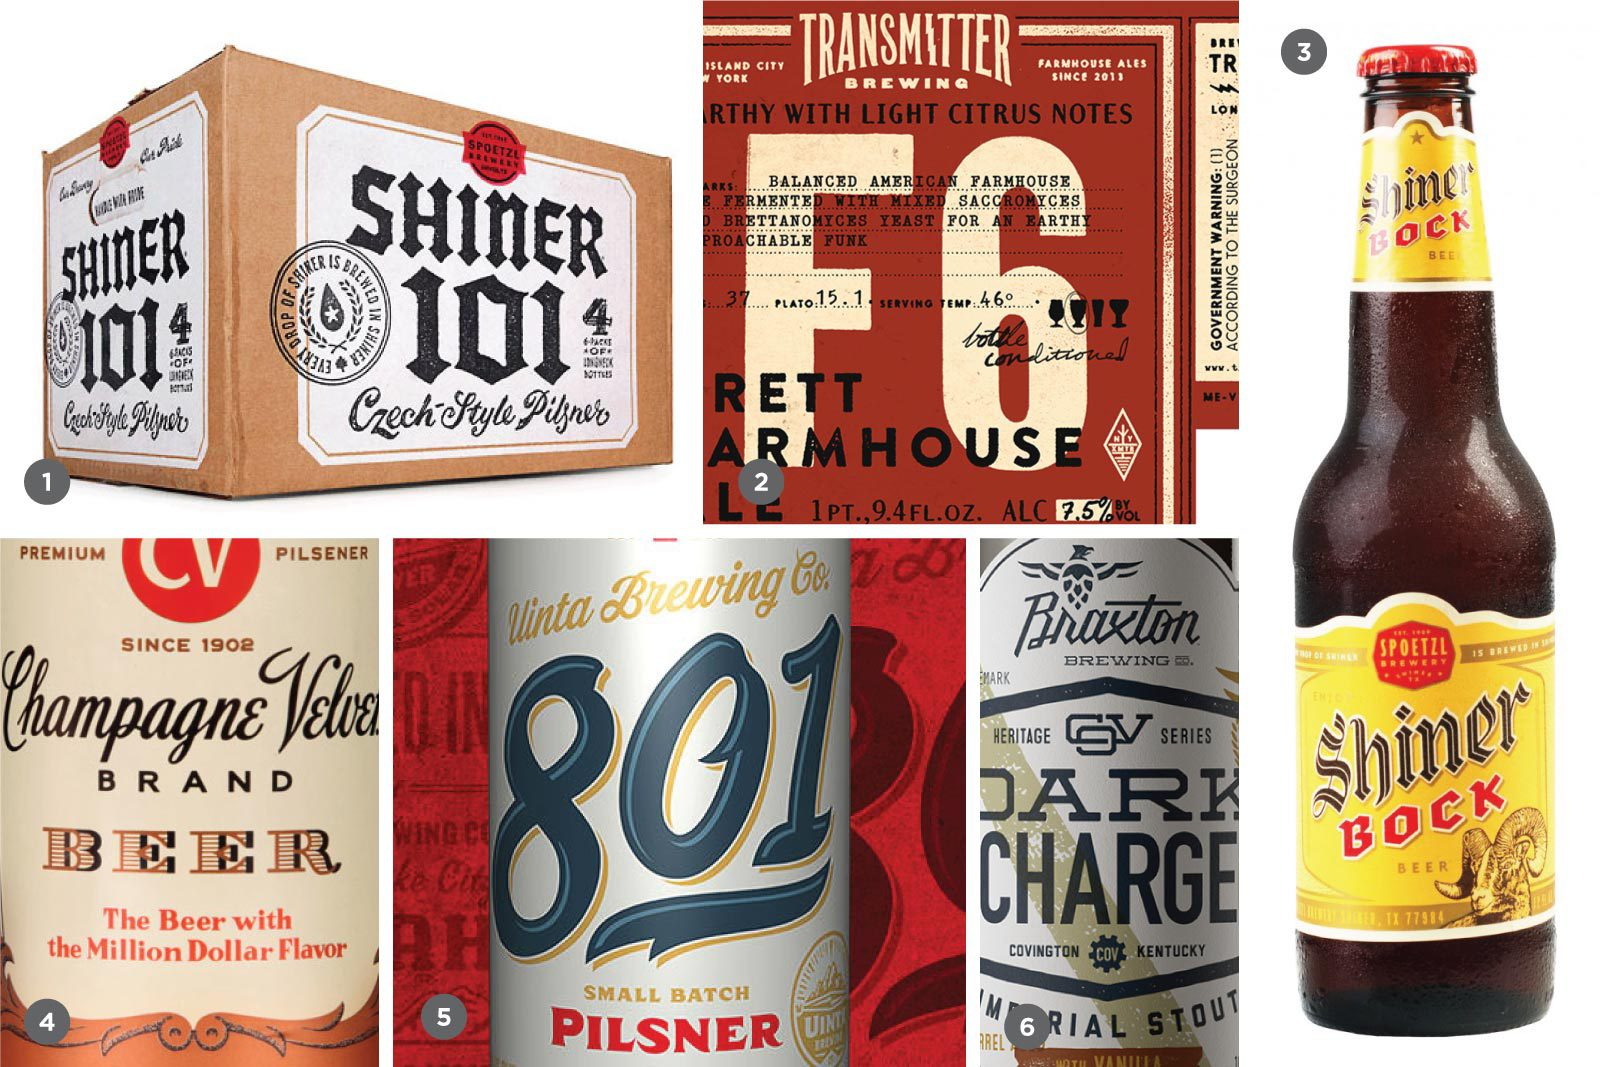 1. Shiner Beers (McGarrah Jesse), 2. Transmitter Brewing Co. (Jeff Rogers), 3. Shiner Beers (McGarrah Jesse), 4. Upland Brewing Co. (Young & Laramore), 5. Uinta Brewing Co. (Emrich Co.), 6. Braxton Brewing Co. (Neltner Small Batch)